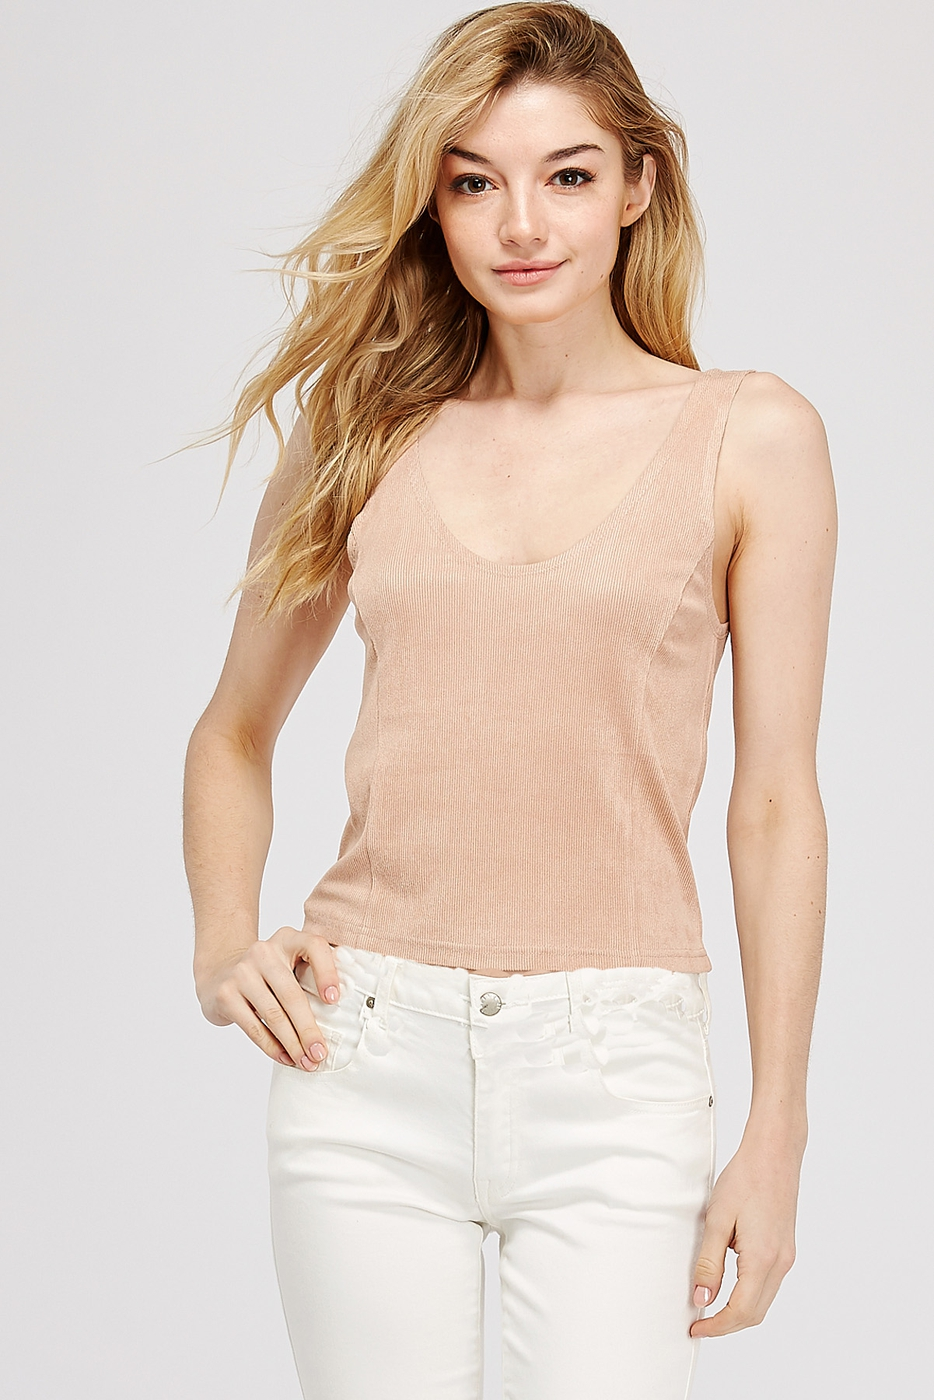 SOFT BRUSHED KNIT TANK - orangeshine.com